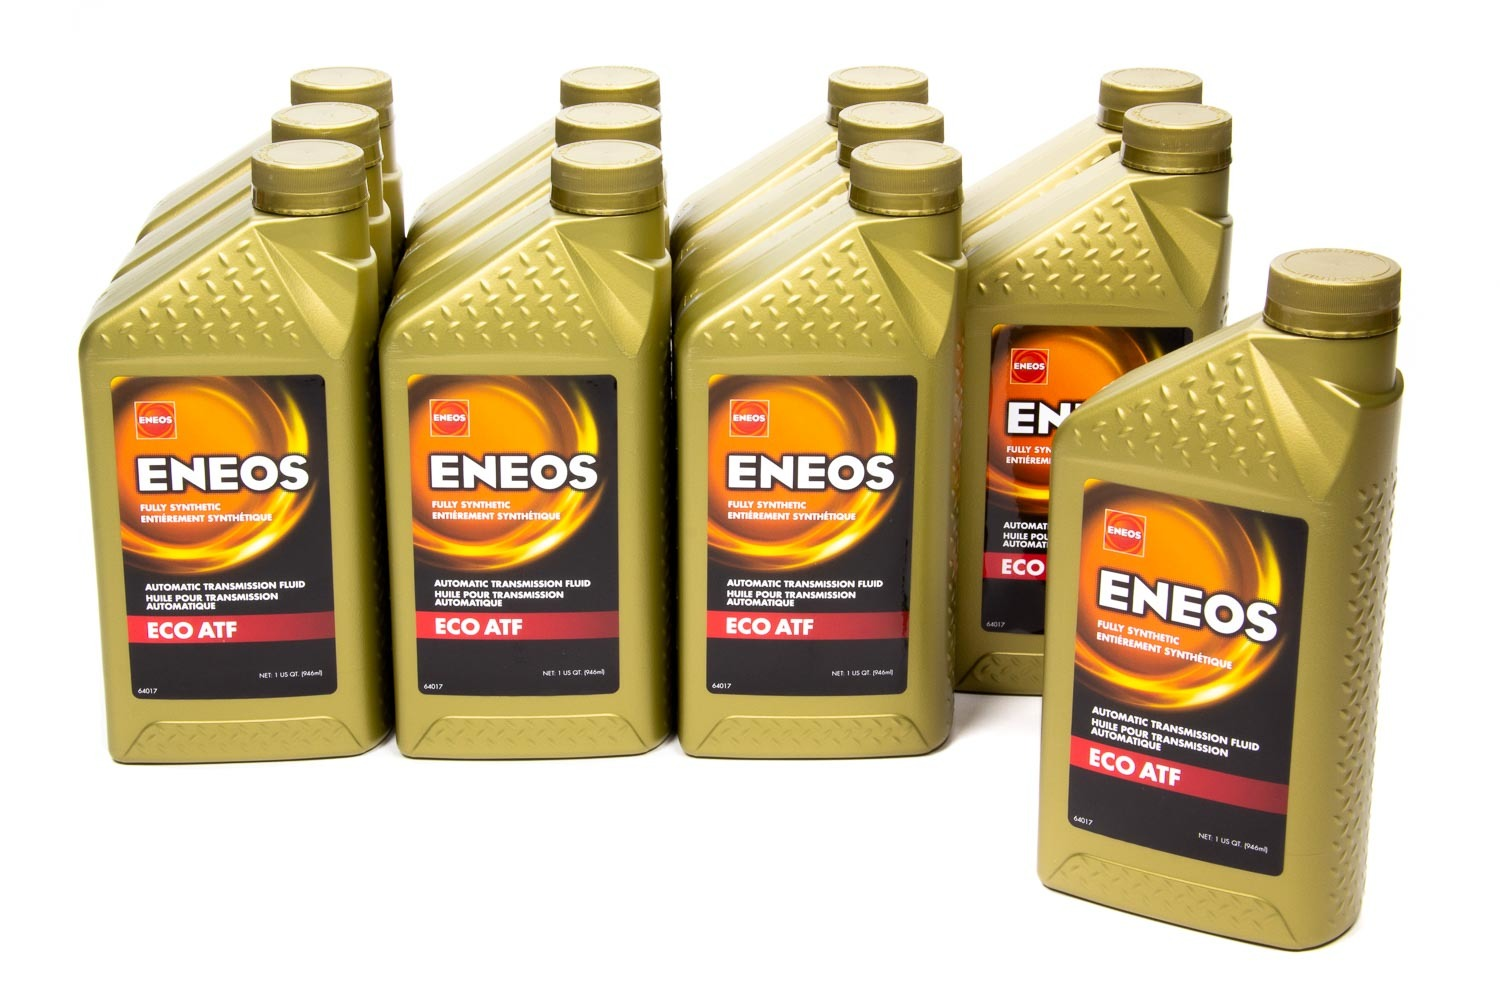 Eneos 3103-301 Transmission Fluid, ECO ATF, Synthetic, 1 qt Bottle, Set of 12